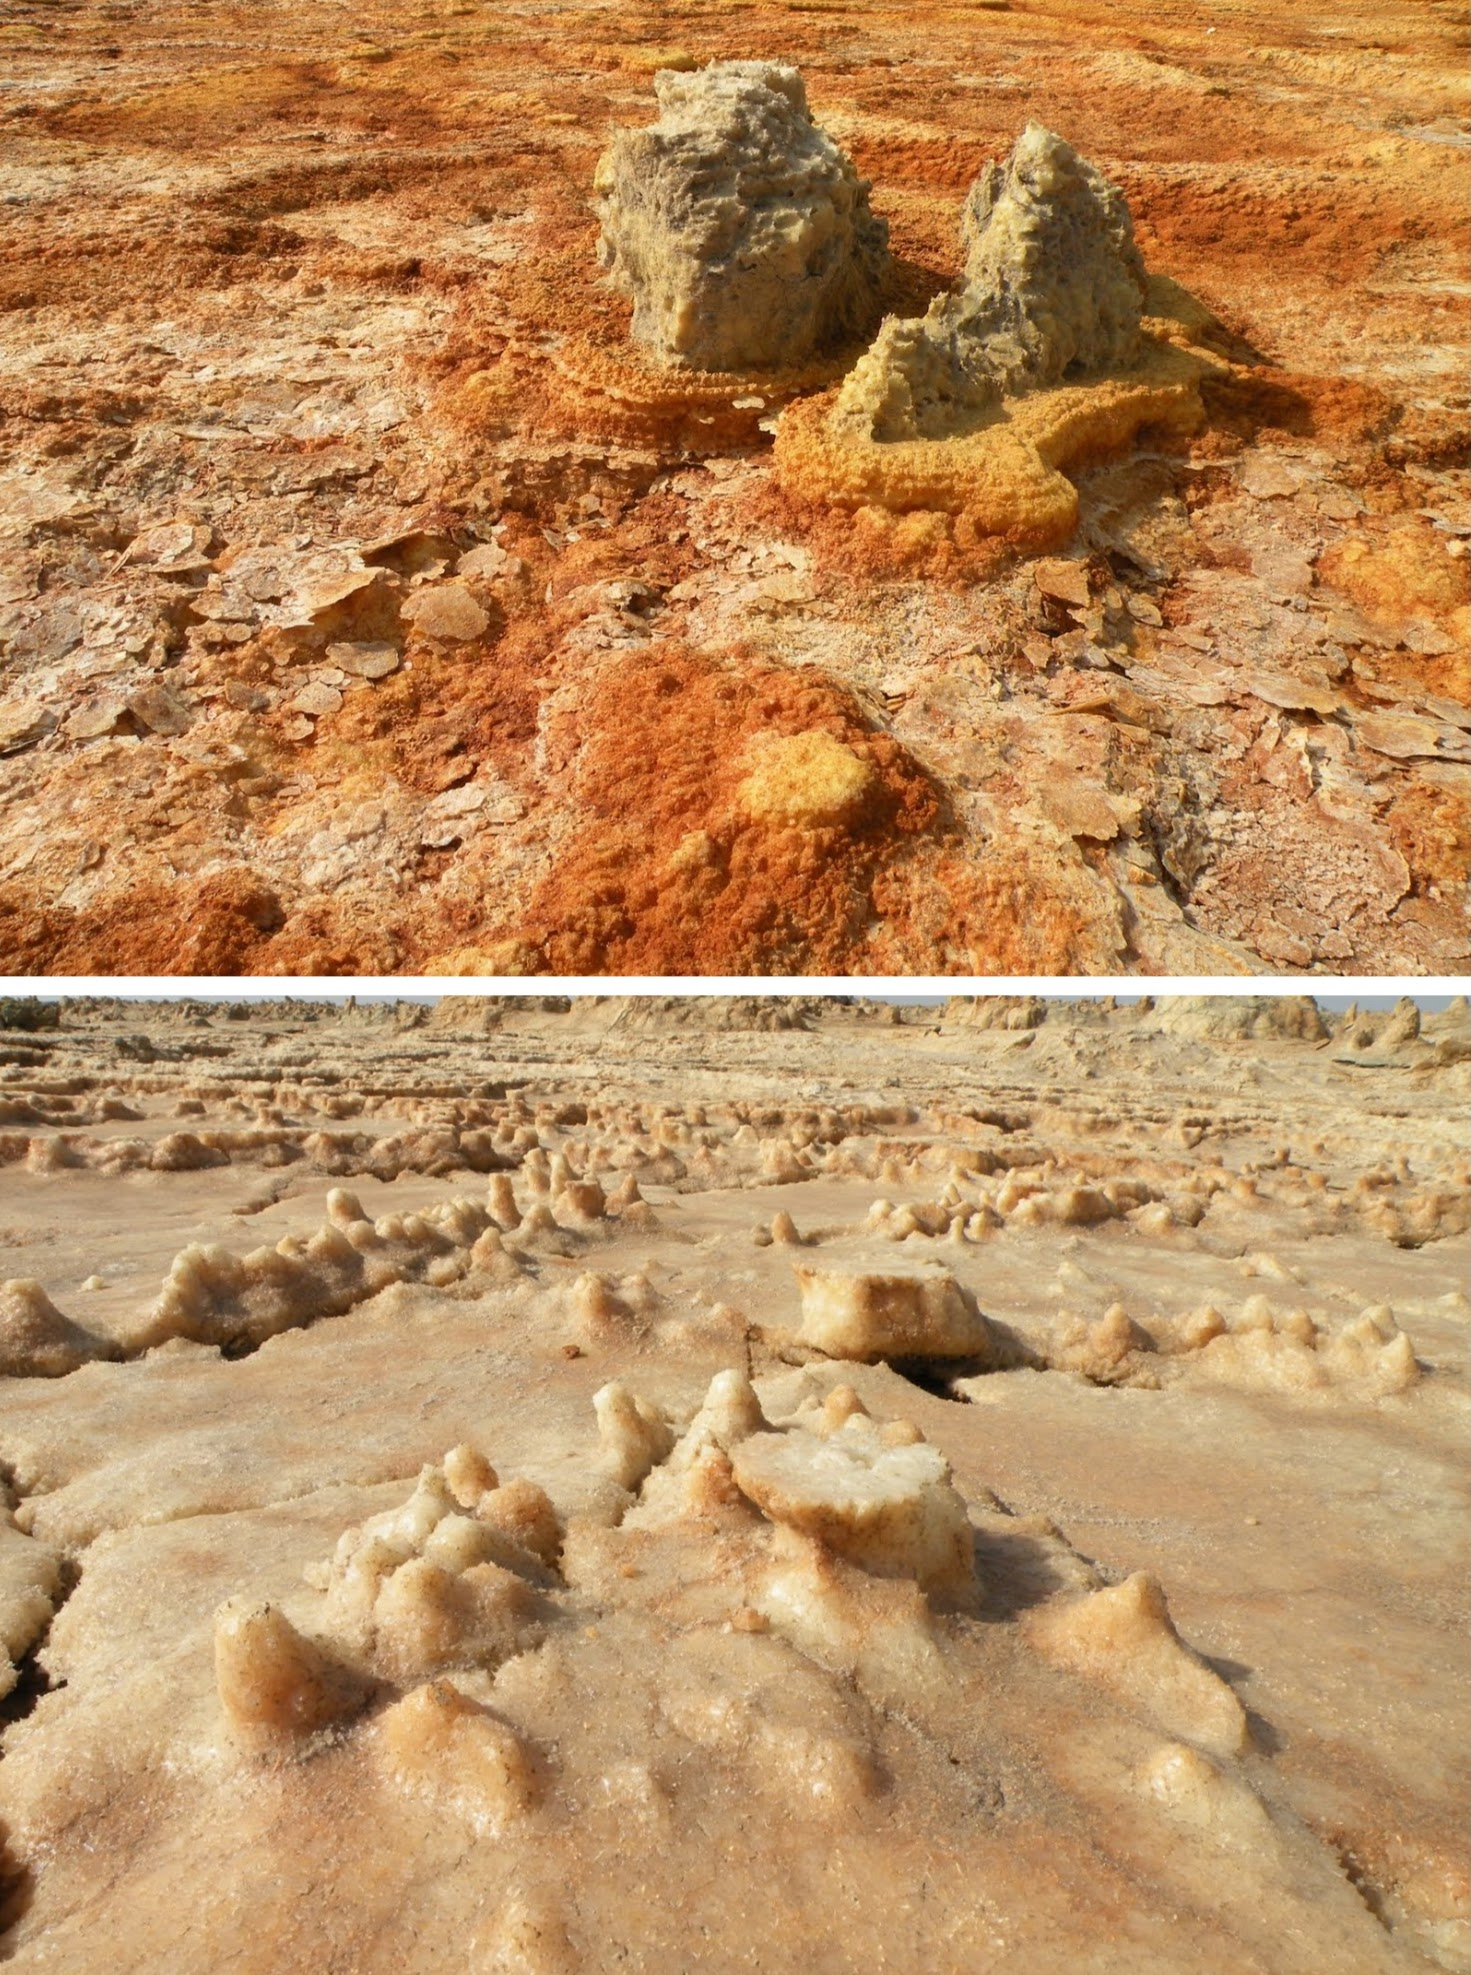 Details of the Dallol landscape